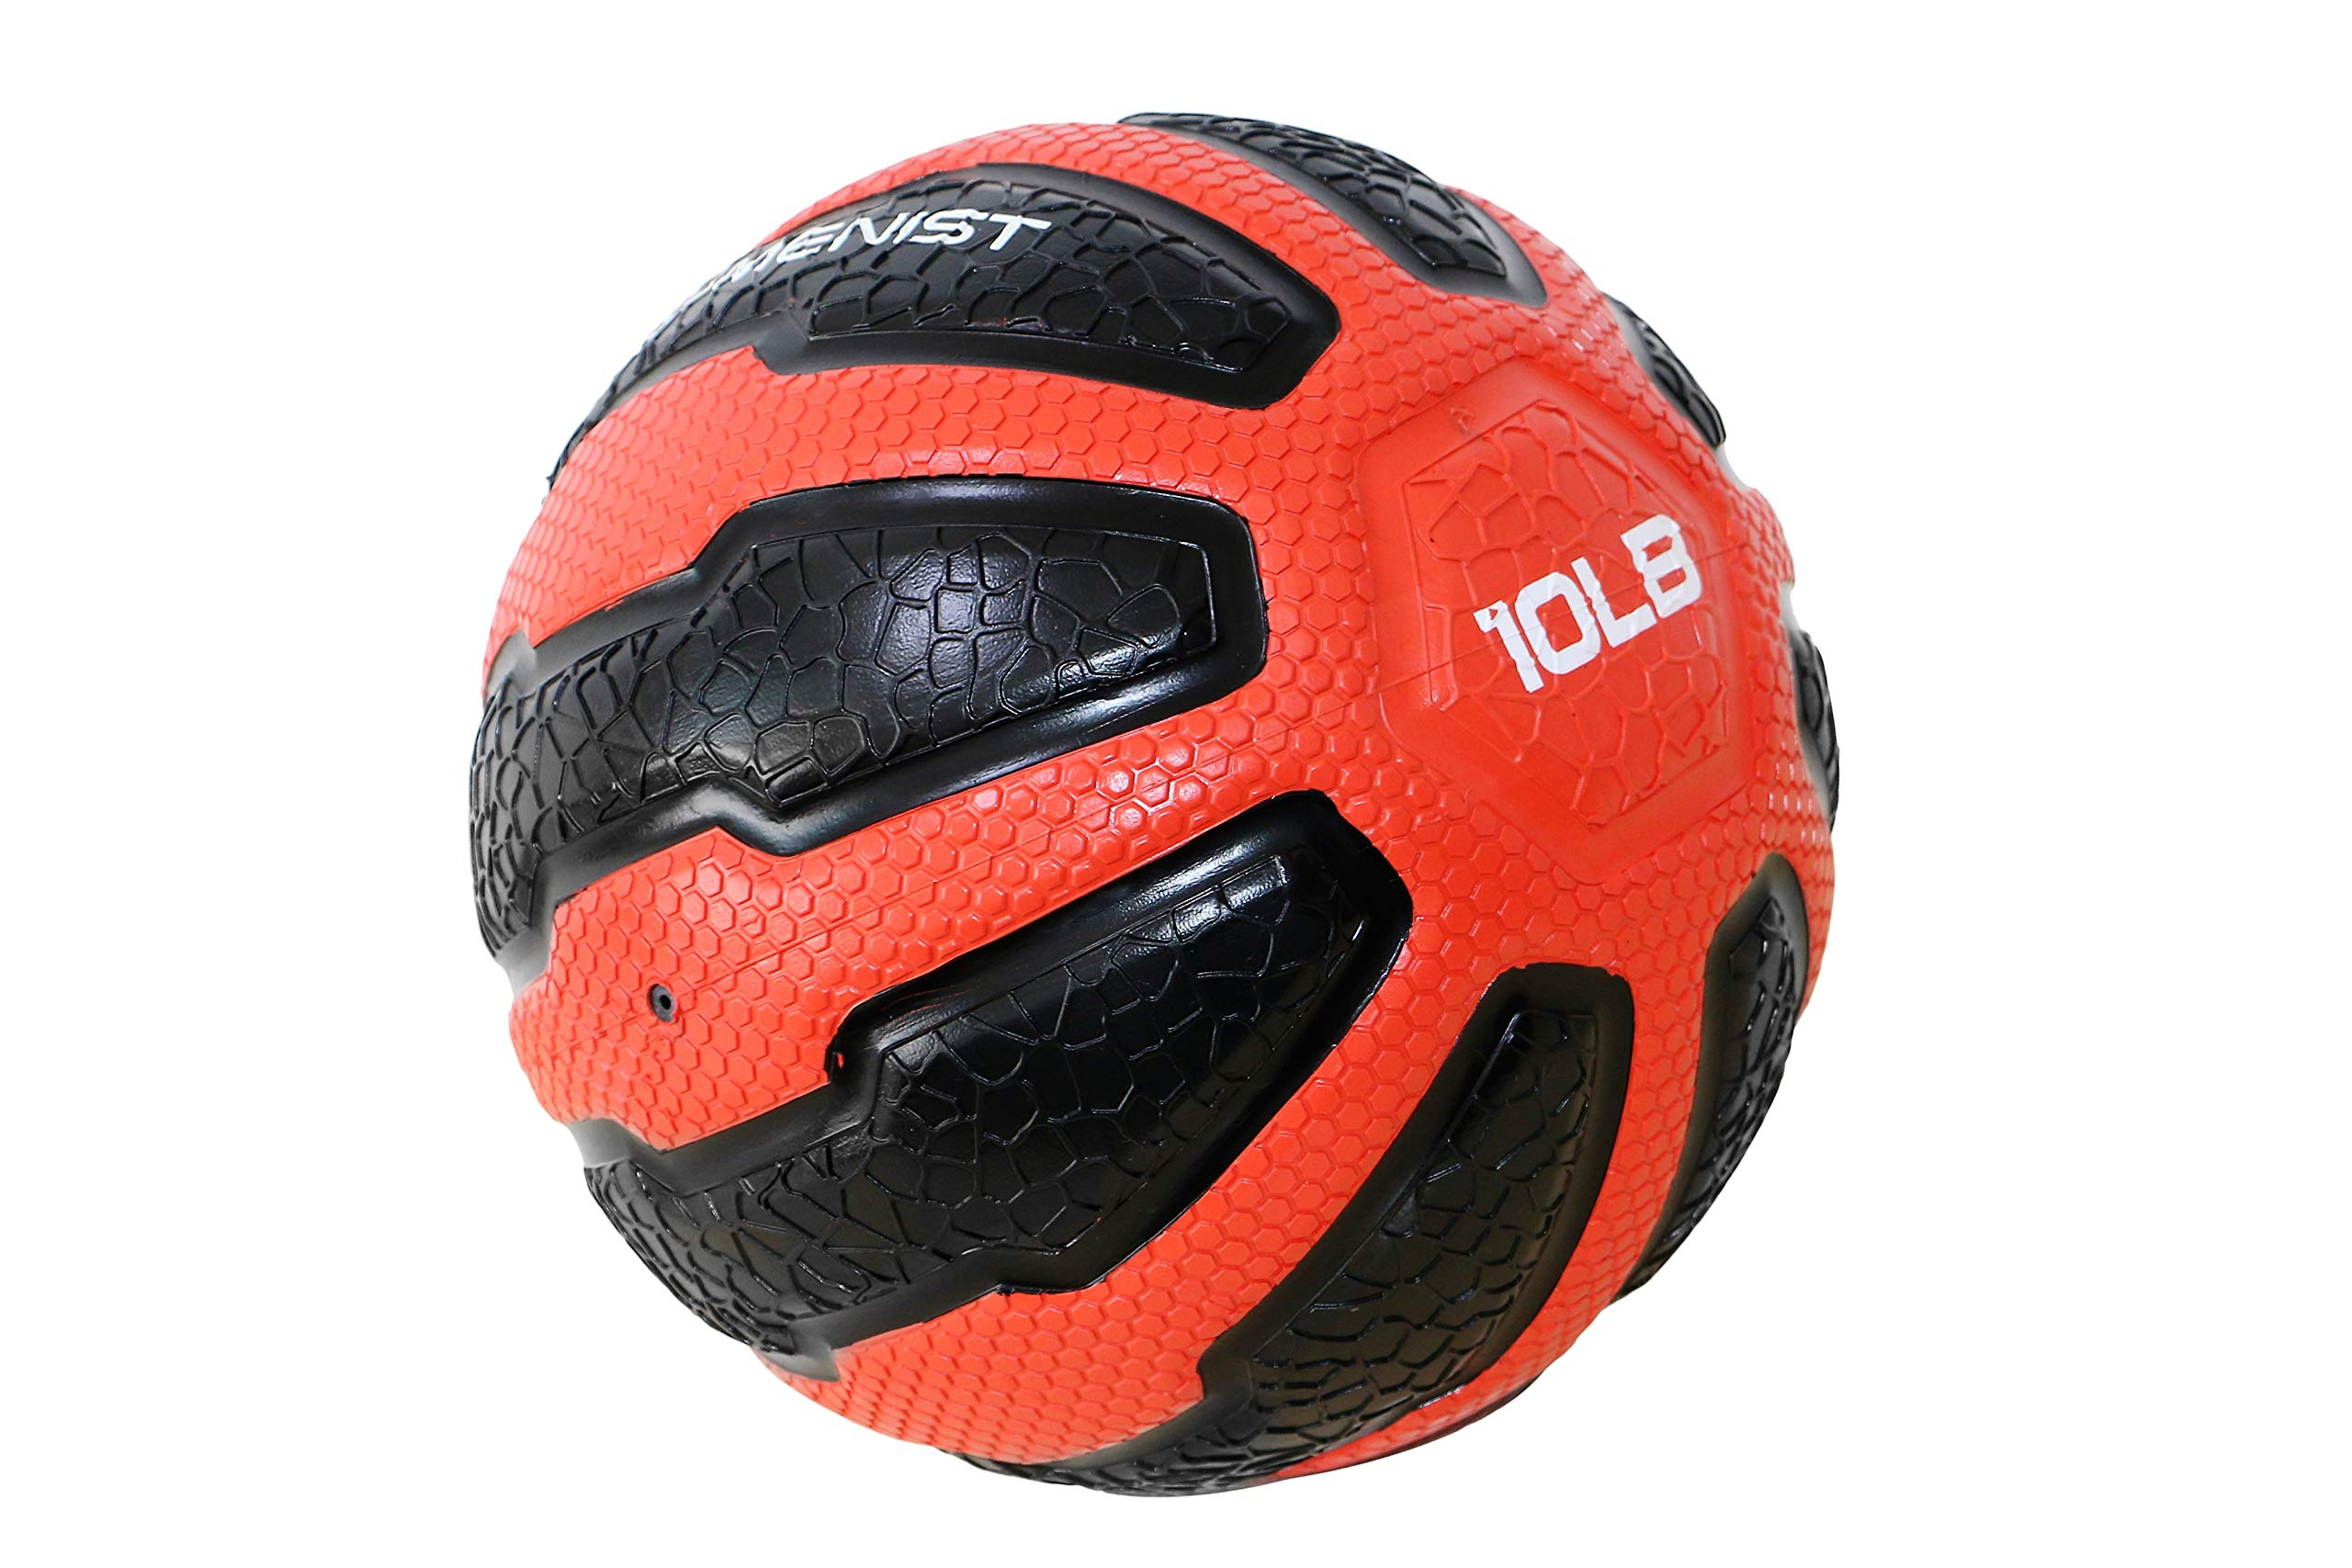 GYMENIST Rubber Medicine Ball with Textured Grip, Available in 9 Sizes, 2-20 LB, Weighted Fitness Balls,Improves Balance and Flexibility - Great for Gym, Workouts, (10 LB (Red- Black))